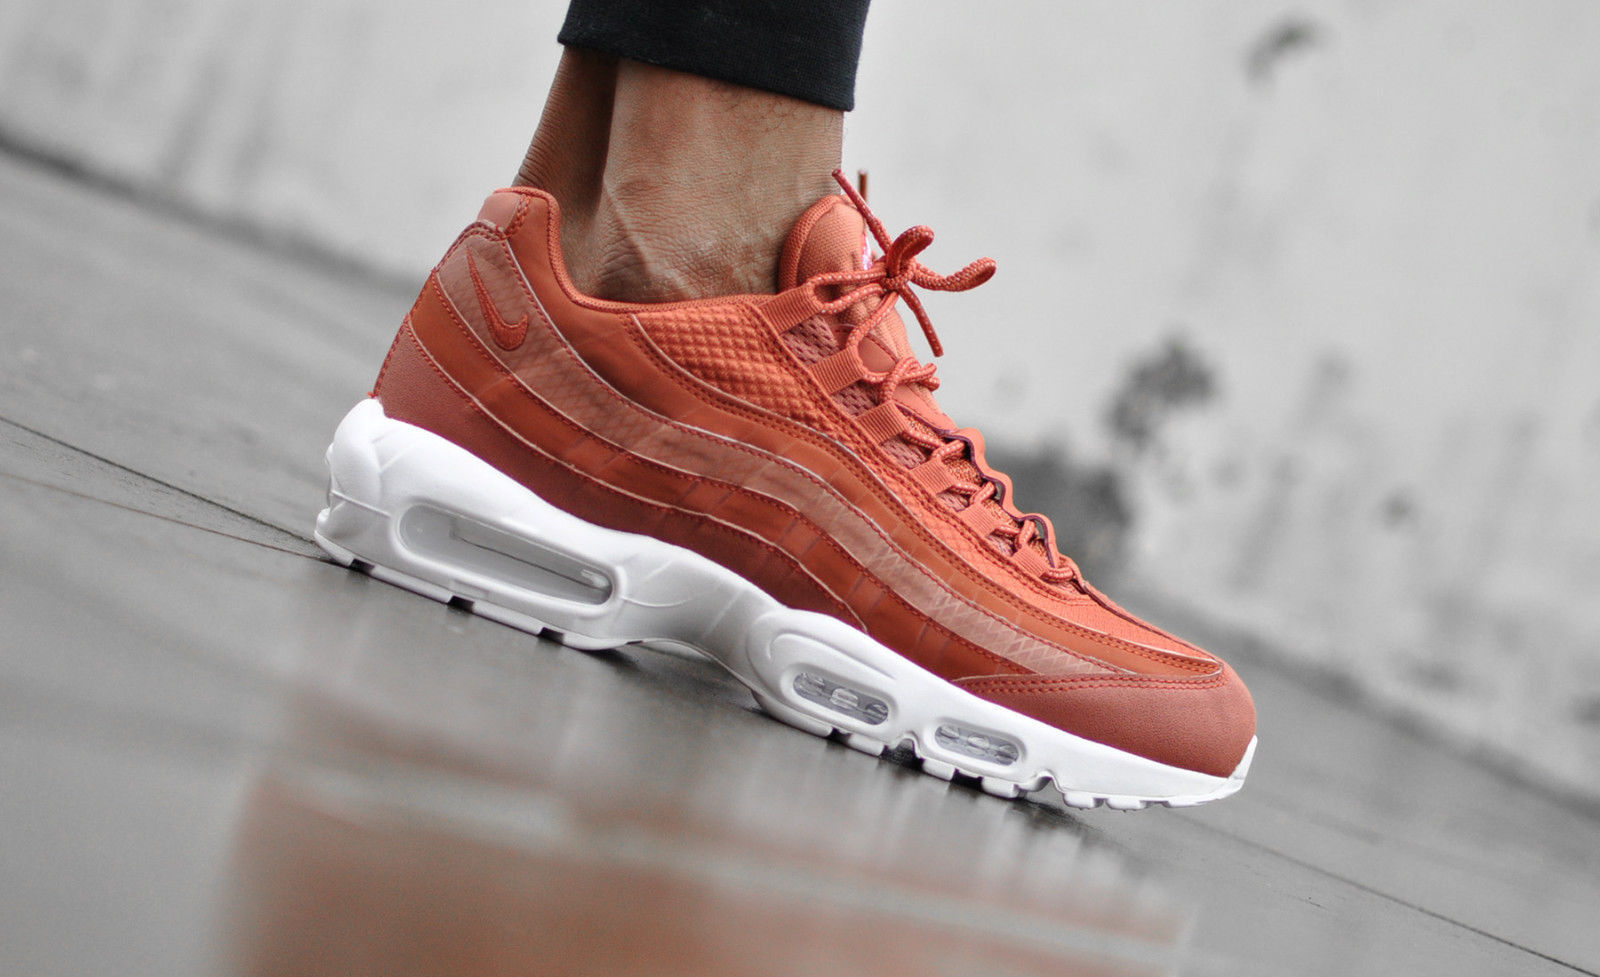 Nike Air Max 95 Premium SE Trainers In Orange 924478-200 cheap sale cheap purchase for sale free shipping best place clearance cheap online Visvg1